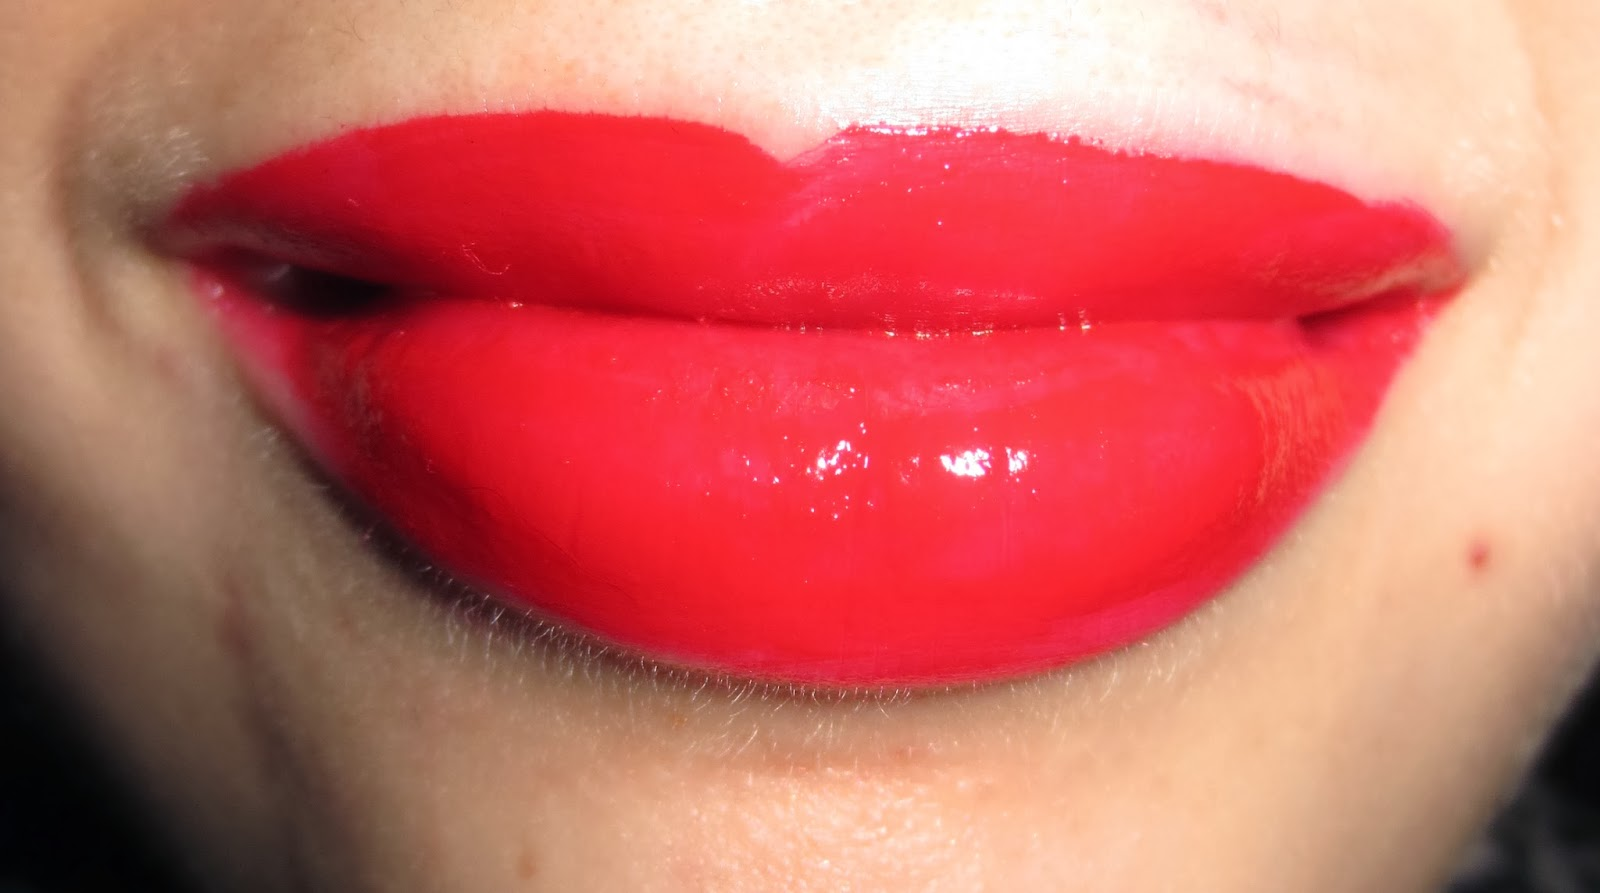 Rimmel Apocalips Lip Lacquer in Big Bang on Lips